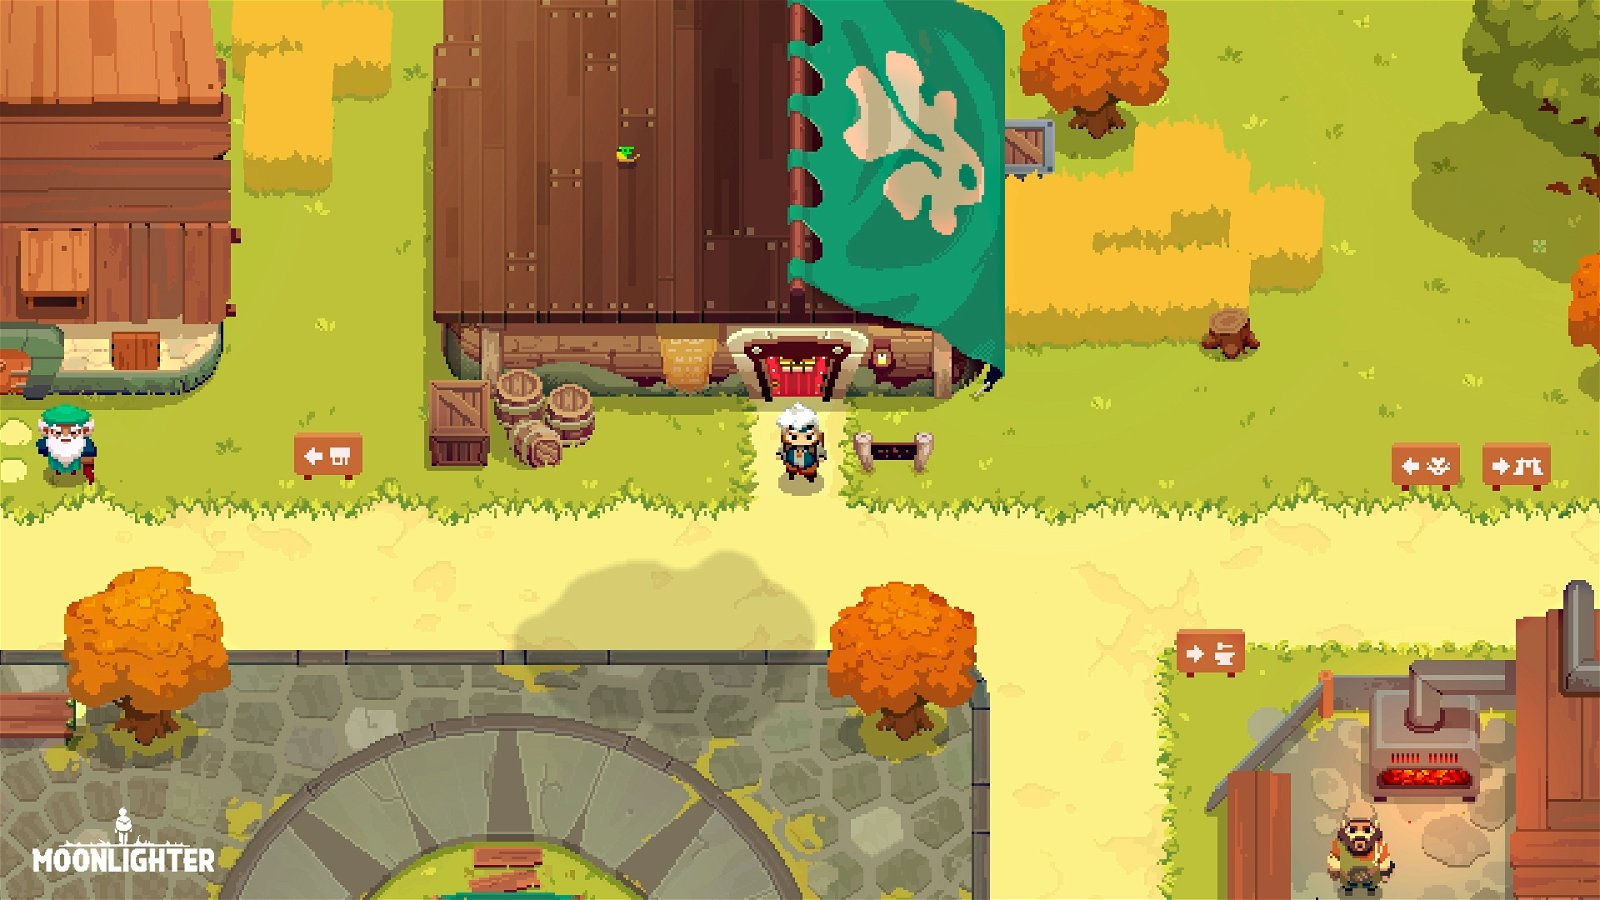 Moonlighter Review - Fire Sale 2